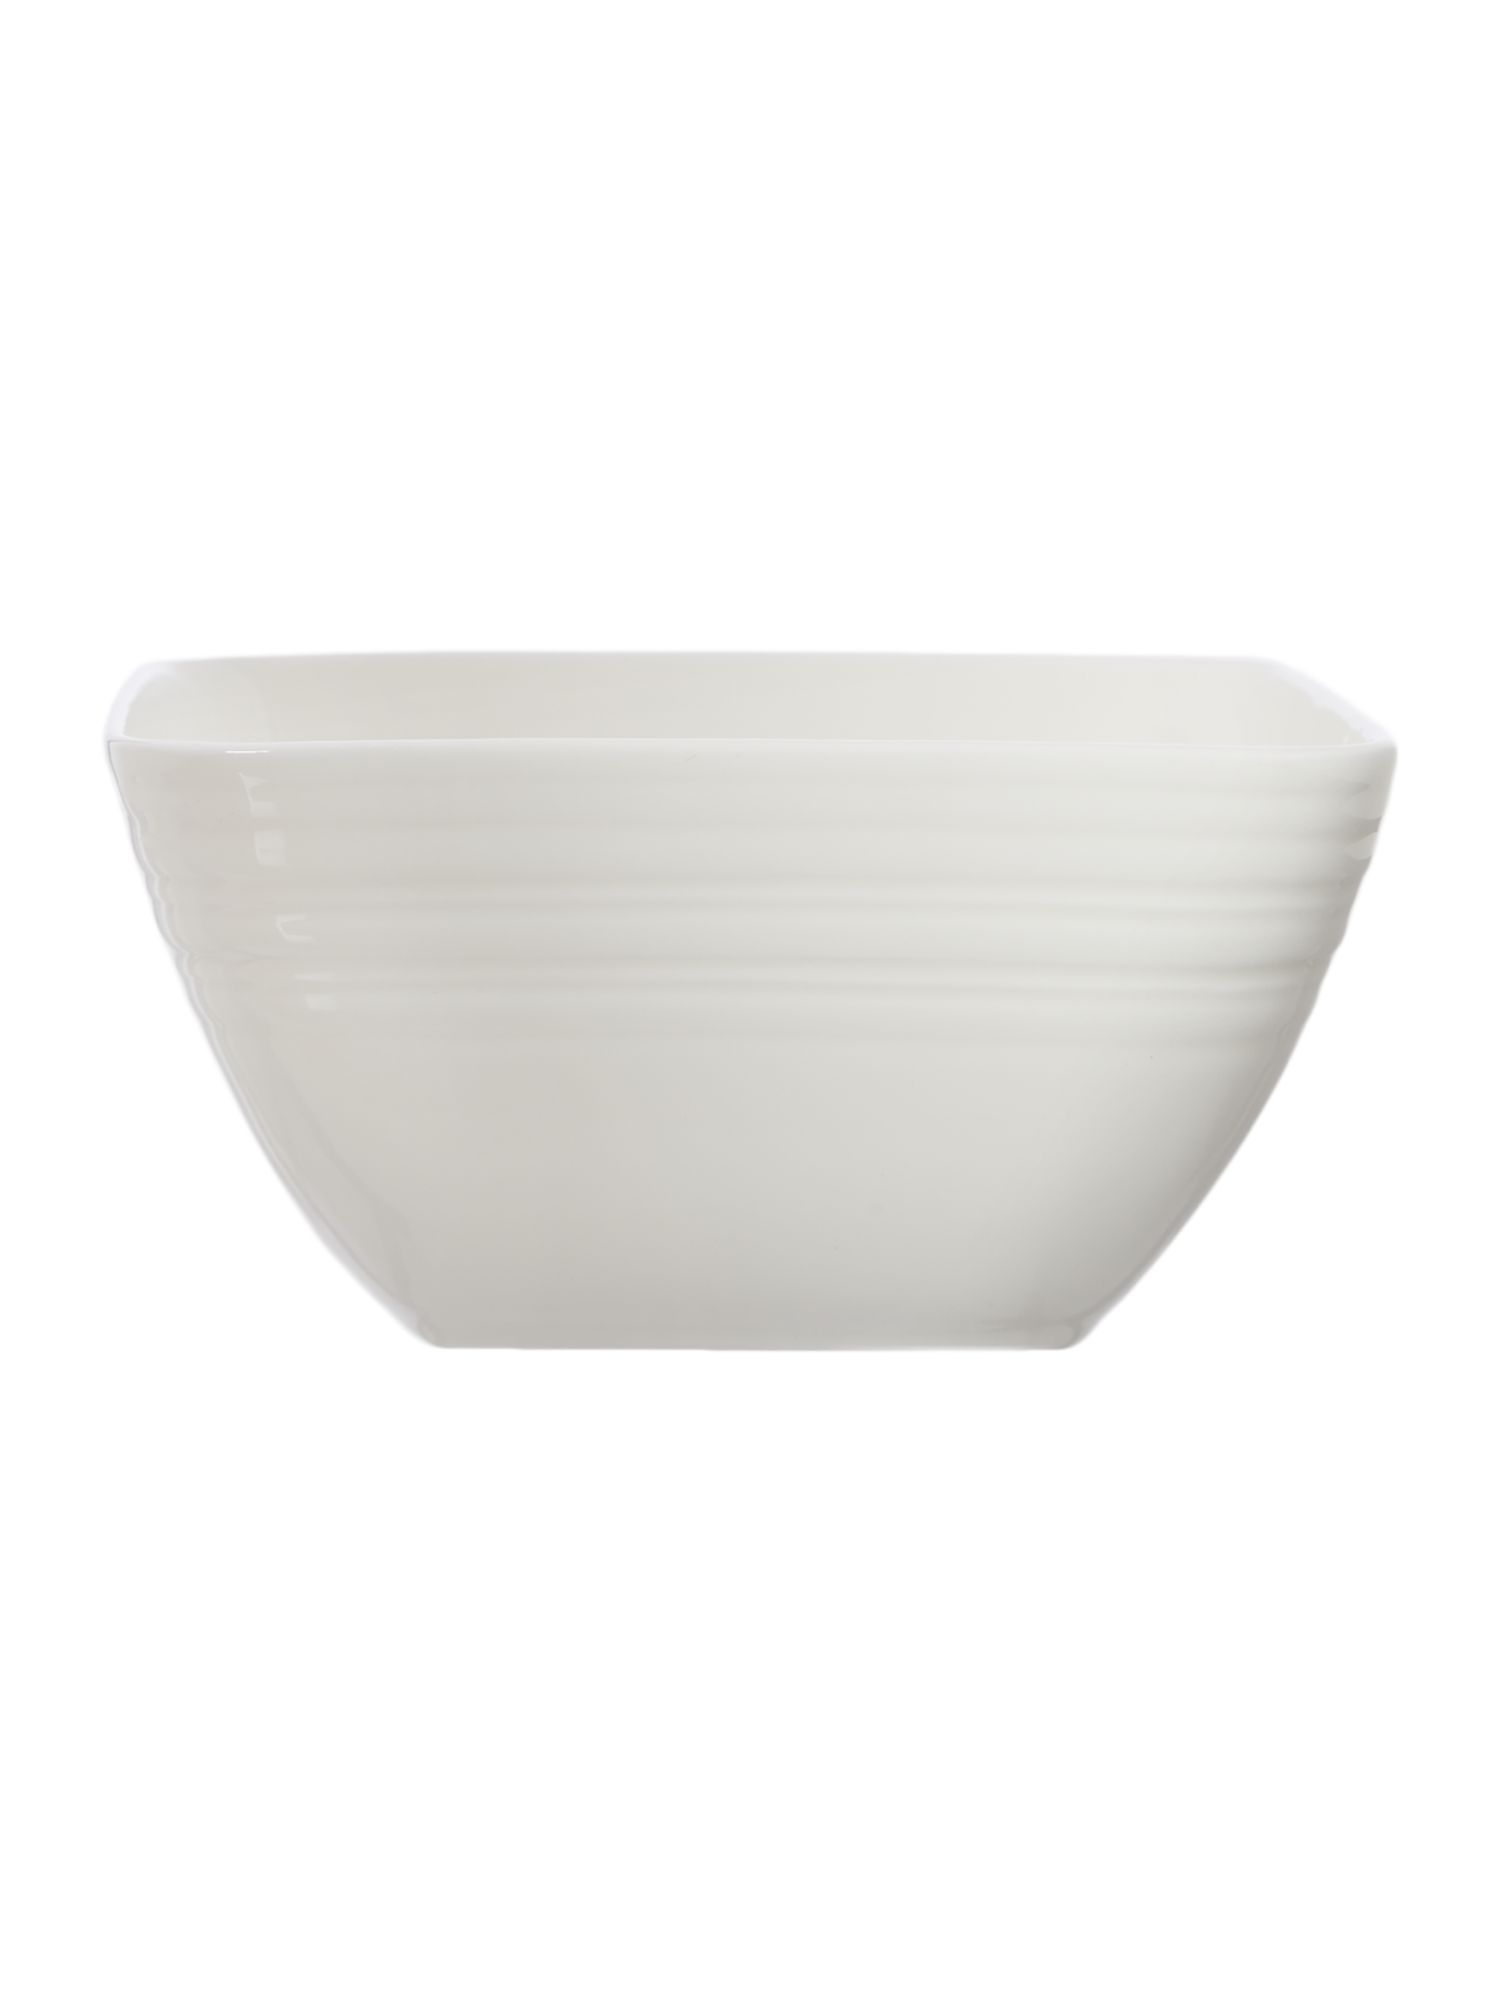 Soho square cereal bowl